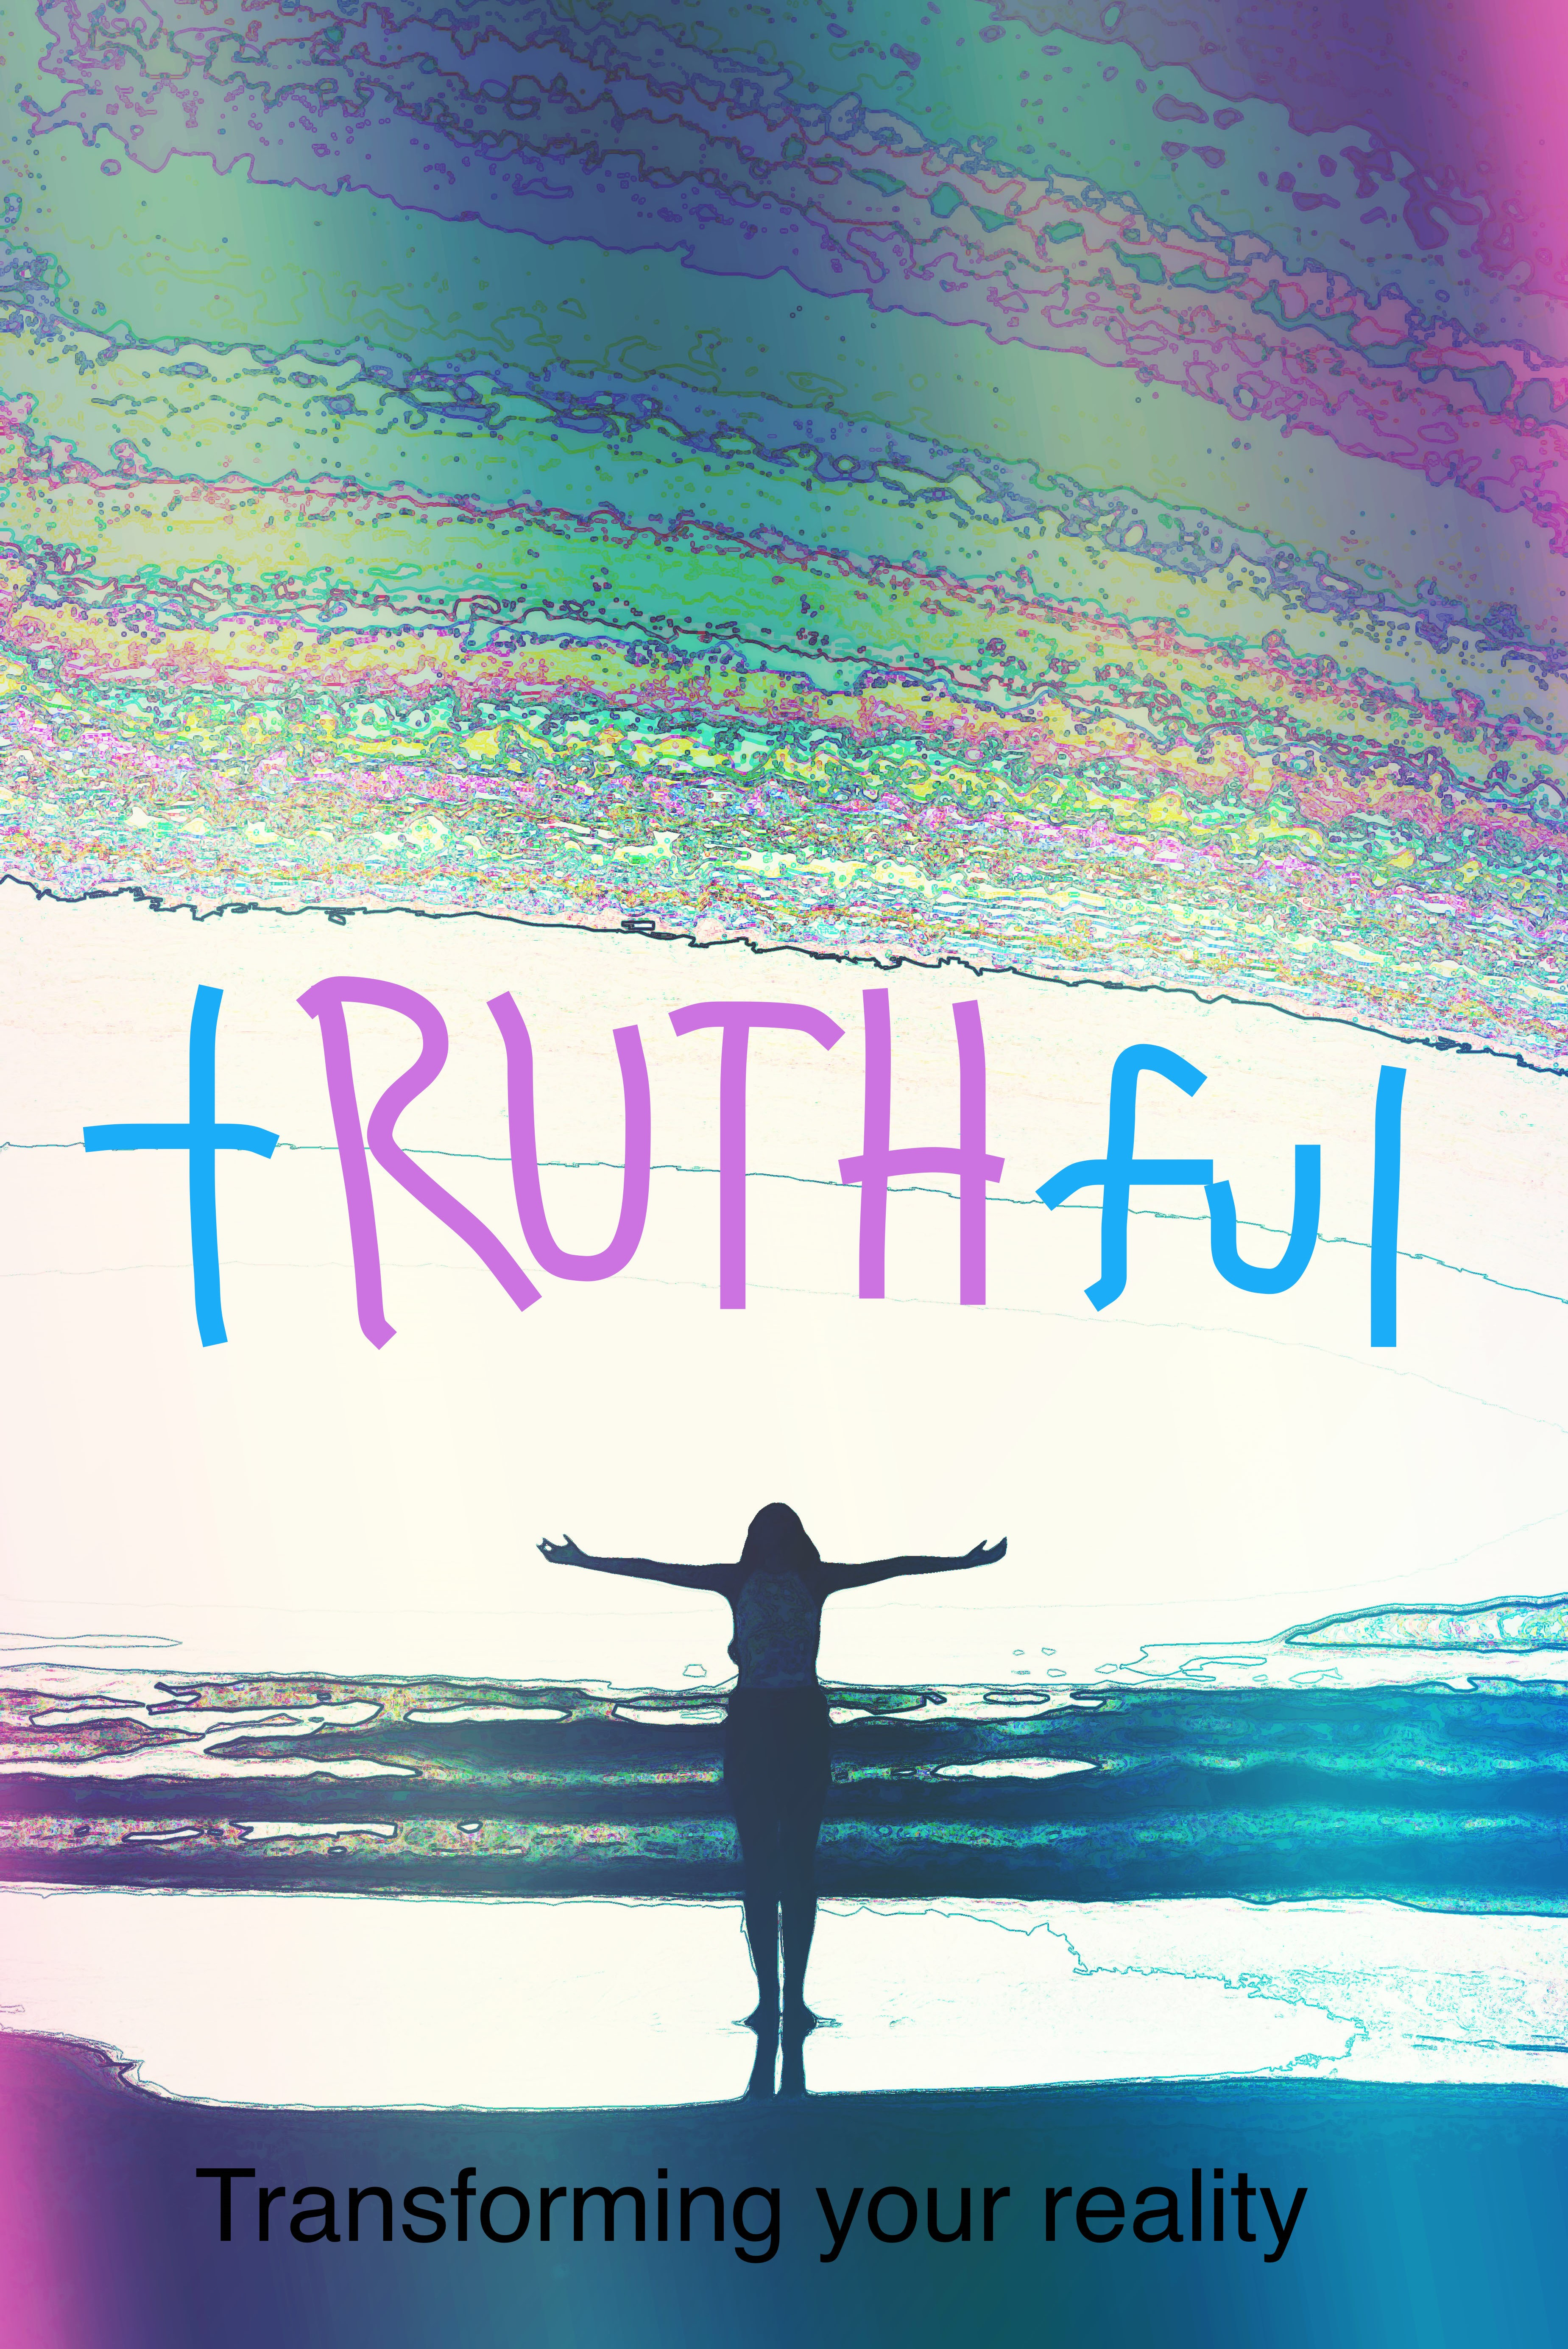 tRUTHful:transforming your reality